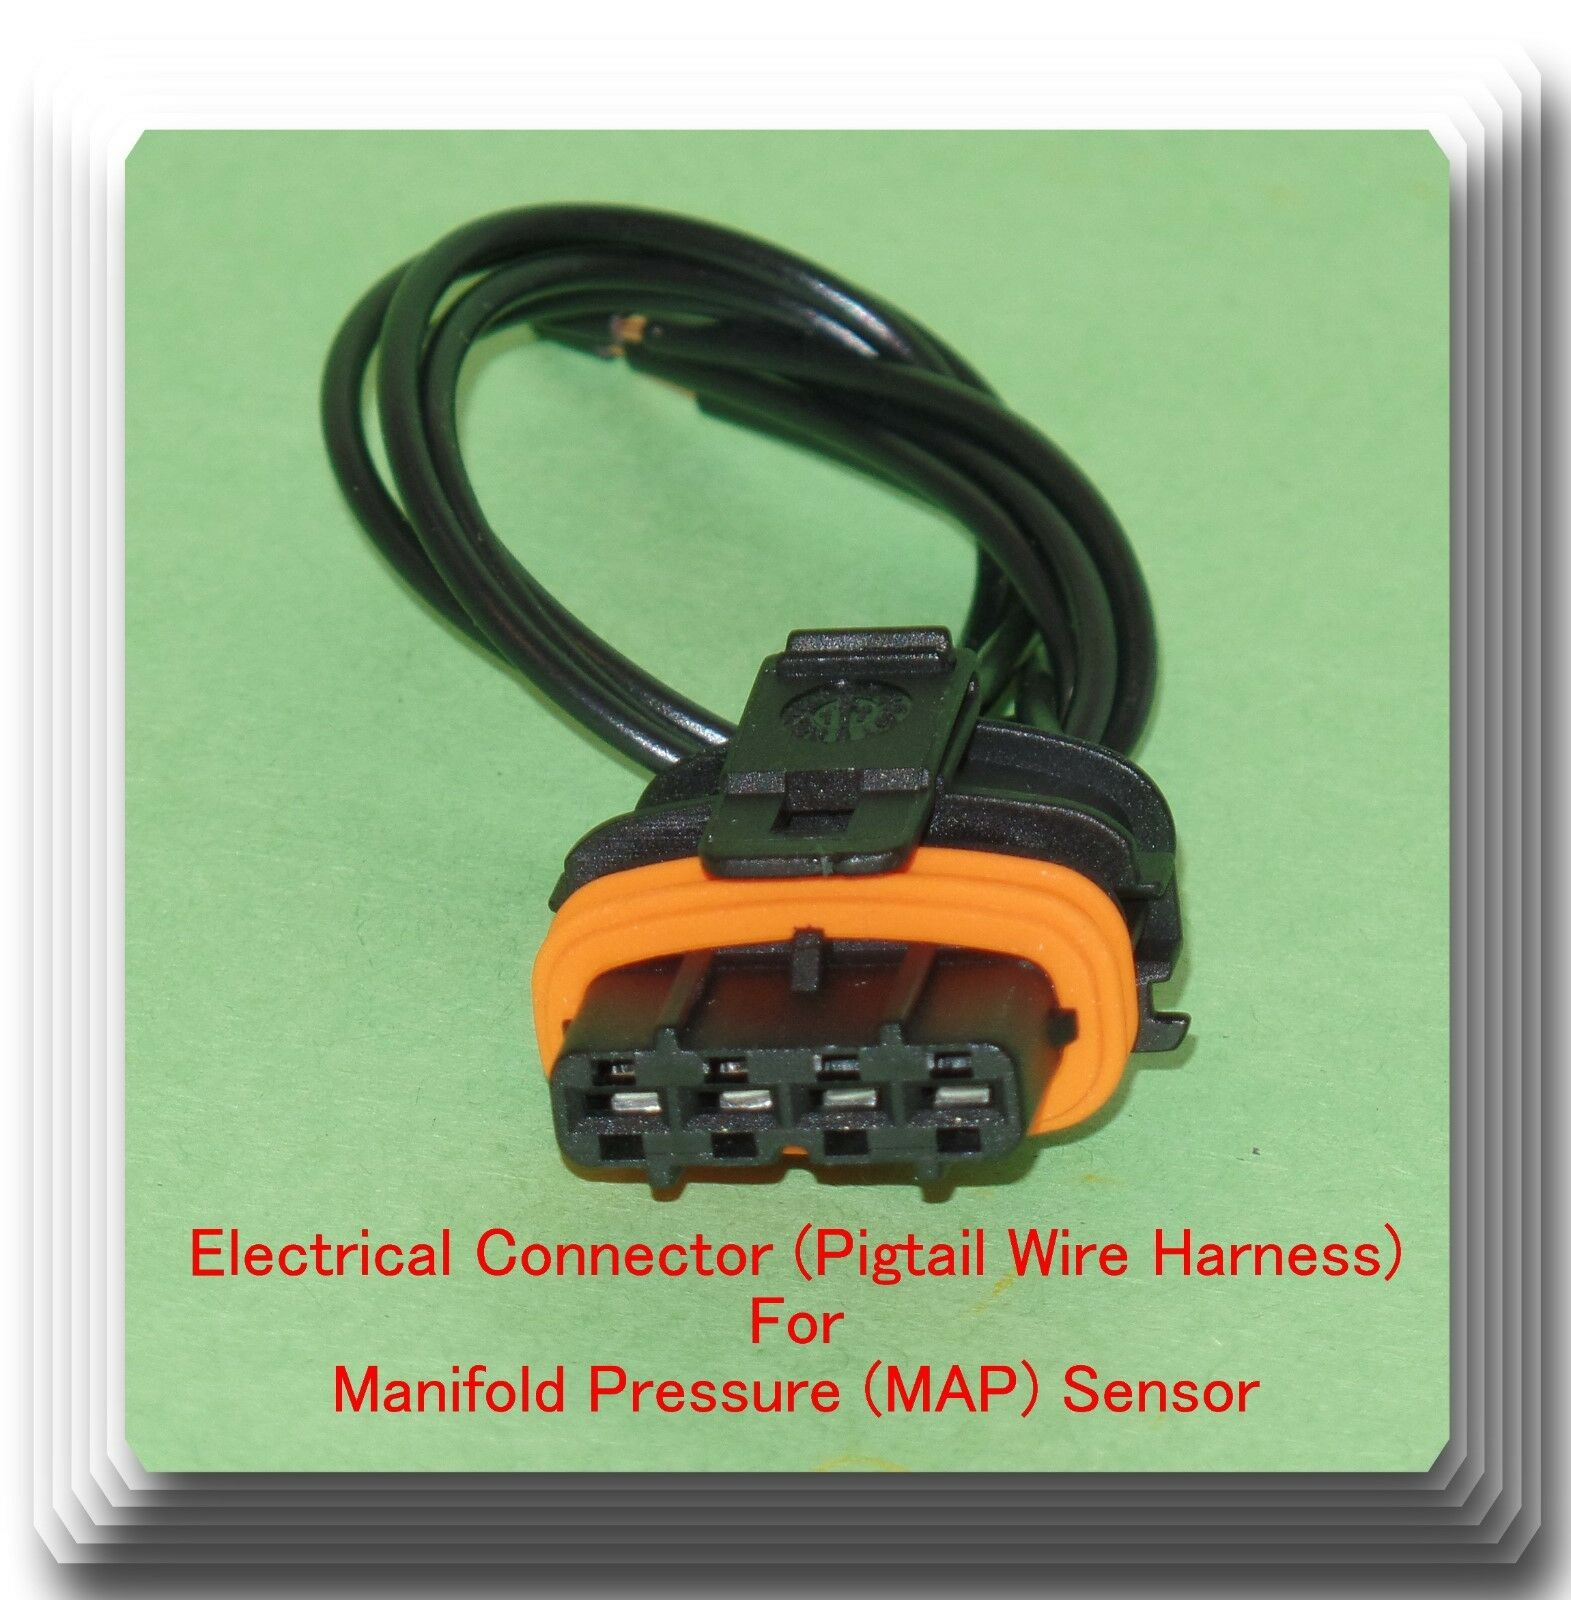 Electrical Connector of Manifold Pressure (MAP) Sensor AS417